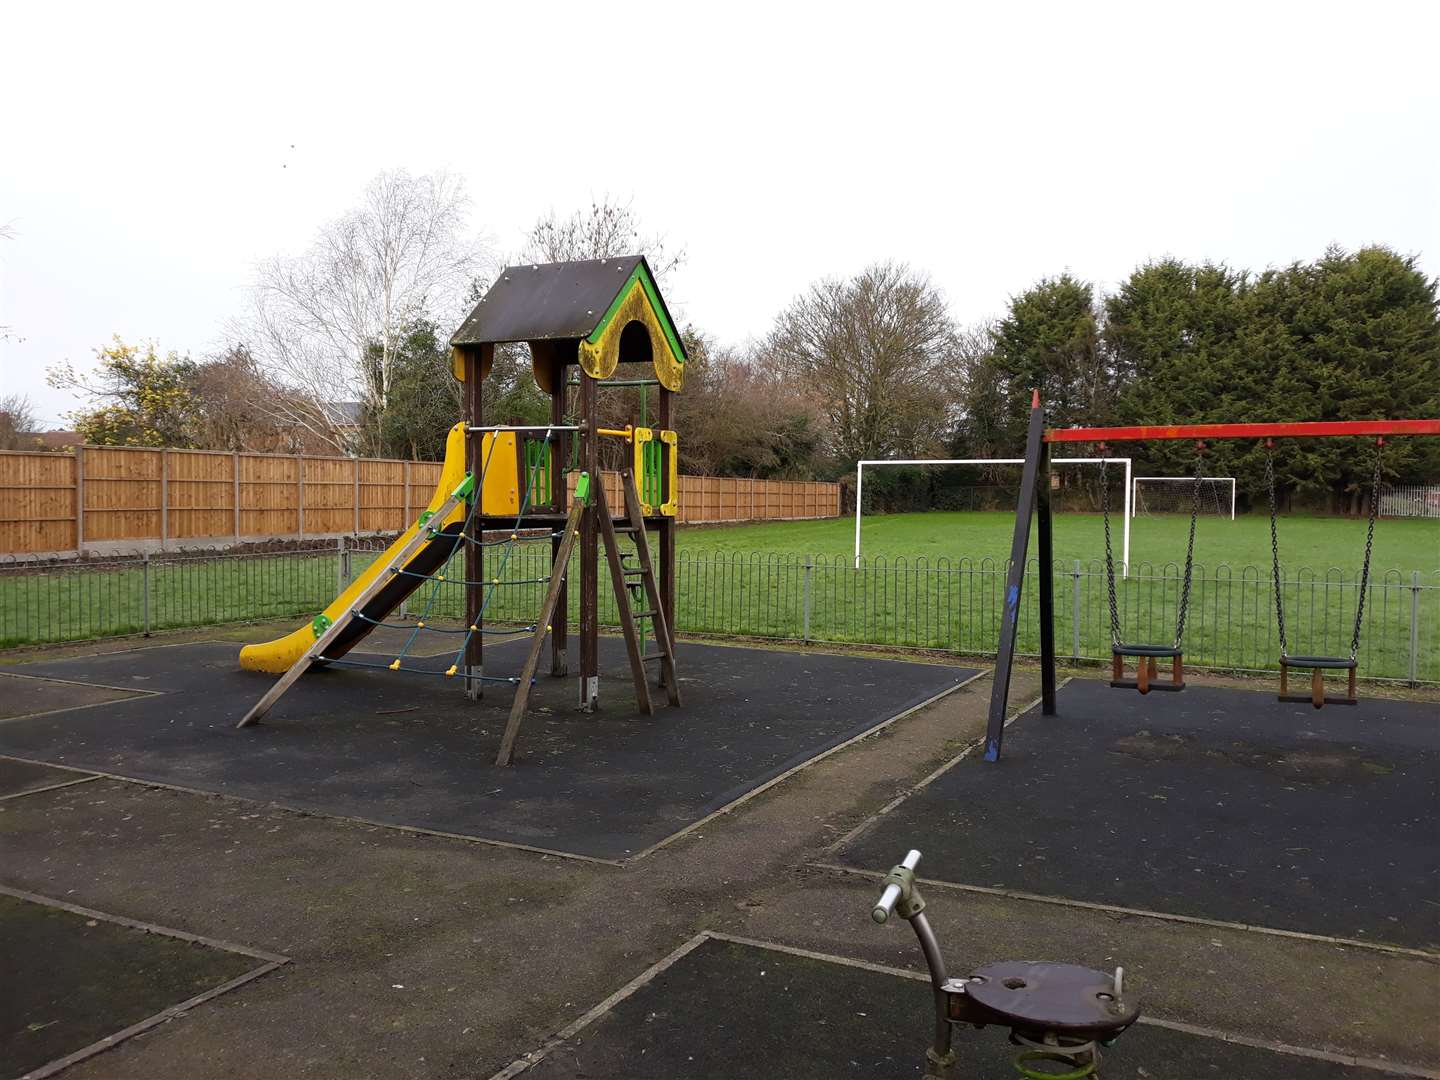 Oaklands Play Area, Swaffham